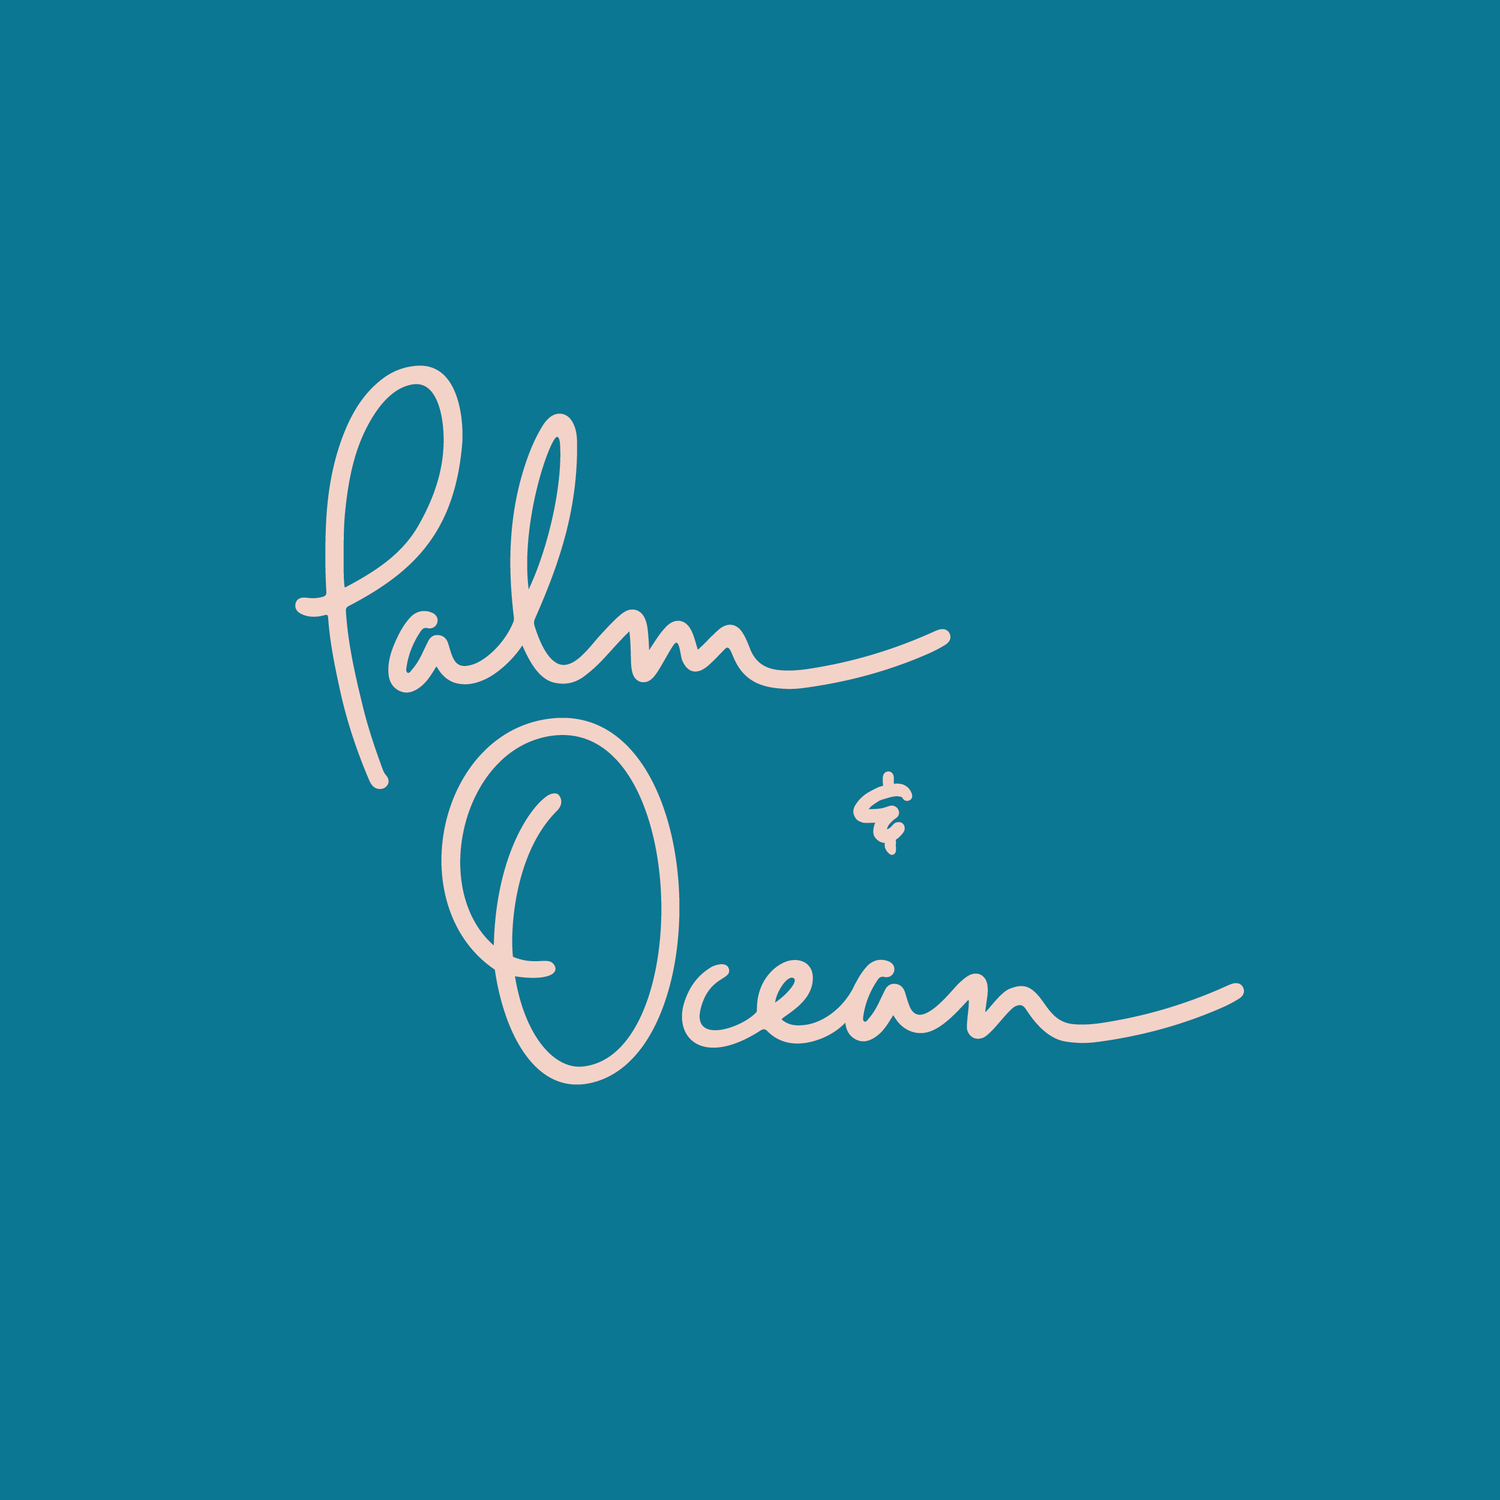 Palm + Ocean Digital Marketing